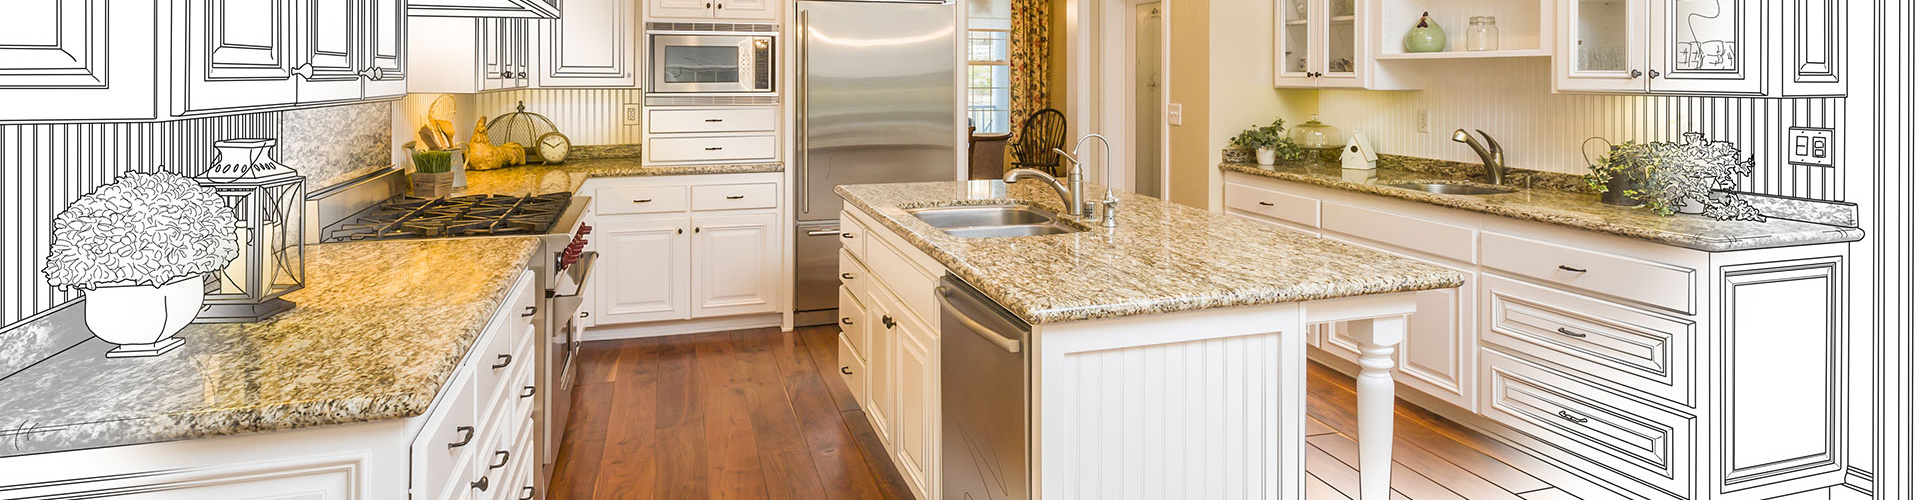 Experienced Home Remodeling Contractors Shreveport Woodshapers